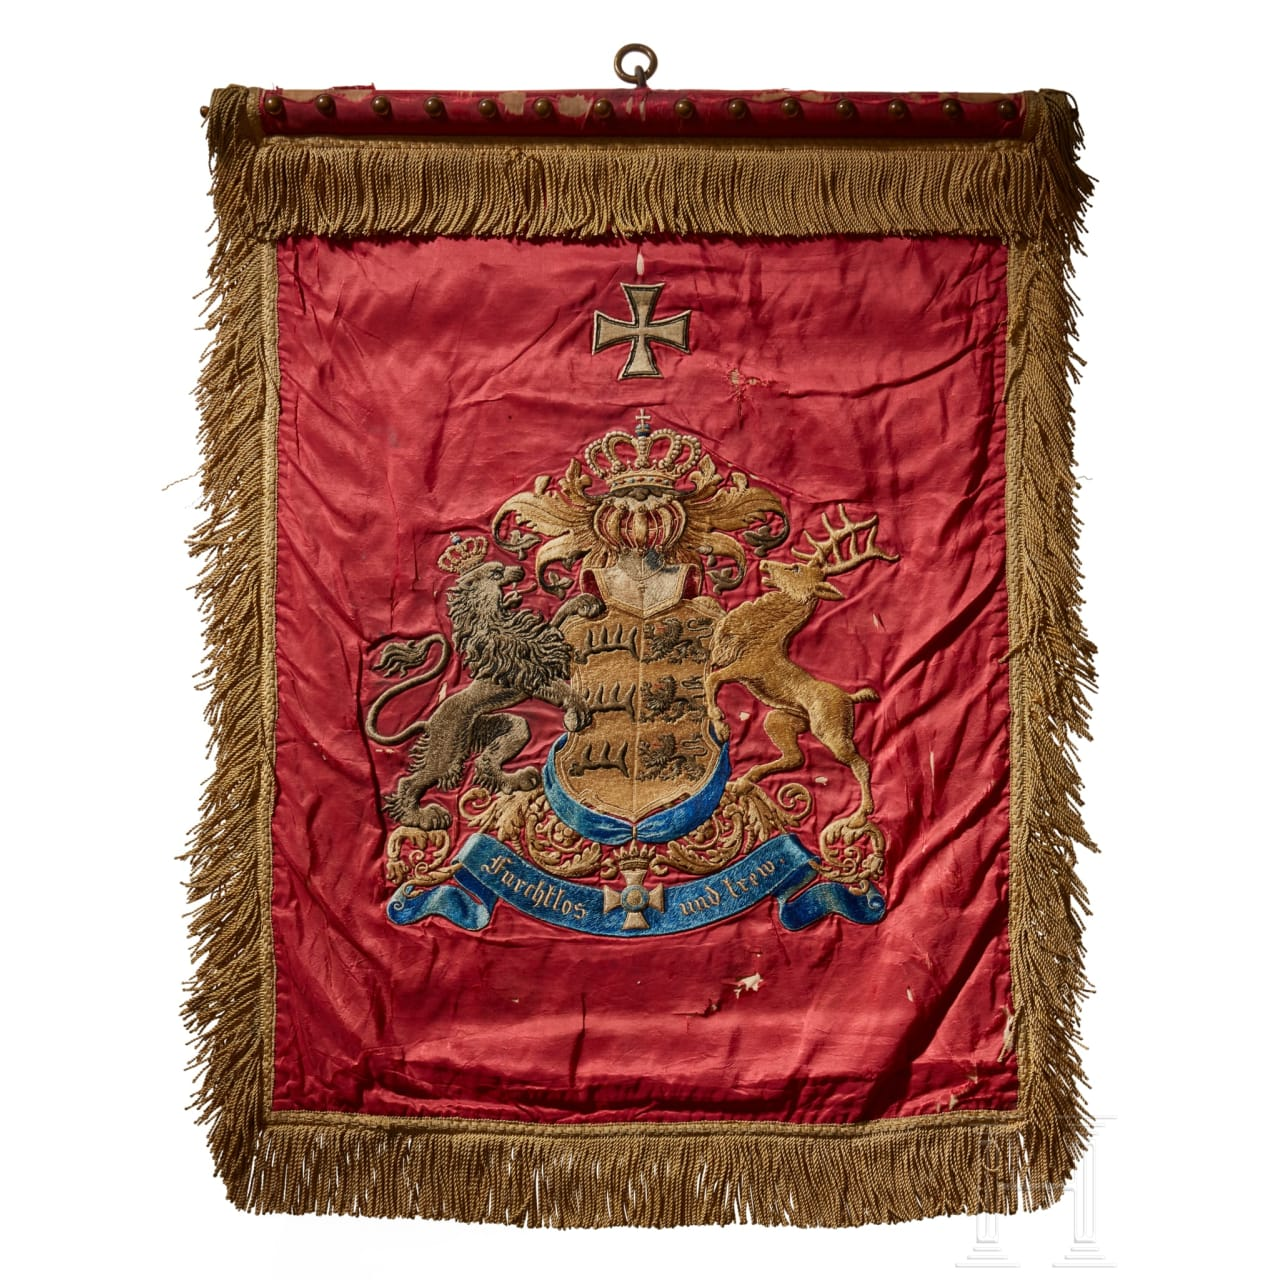 A standard of the Württemberg Dragoon Reserve Regiment